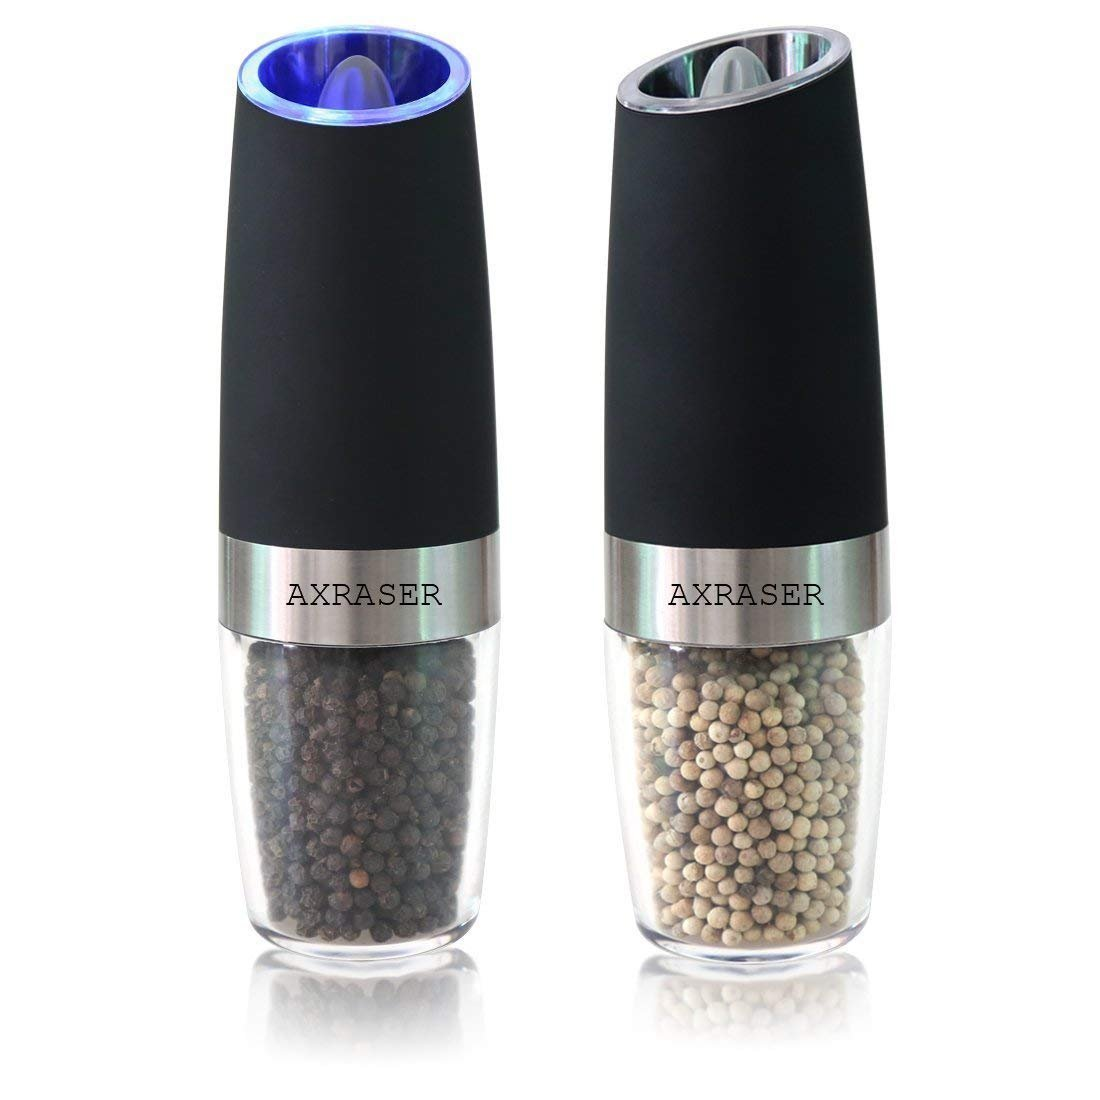 Axraser Gravity Electric Salt and Pepper Grinder Set of 2 - Automatic Operation, Battery Powered, Blue LED Light - Adjustable Ceramic Grinding Coarseness Mills with Free Garlic Peeler, Matte Black